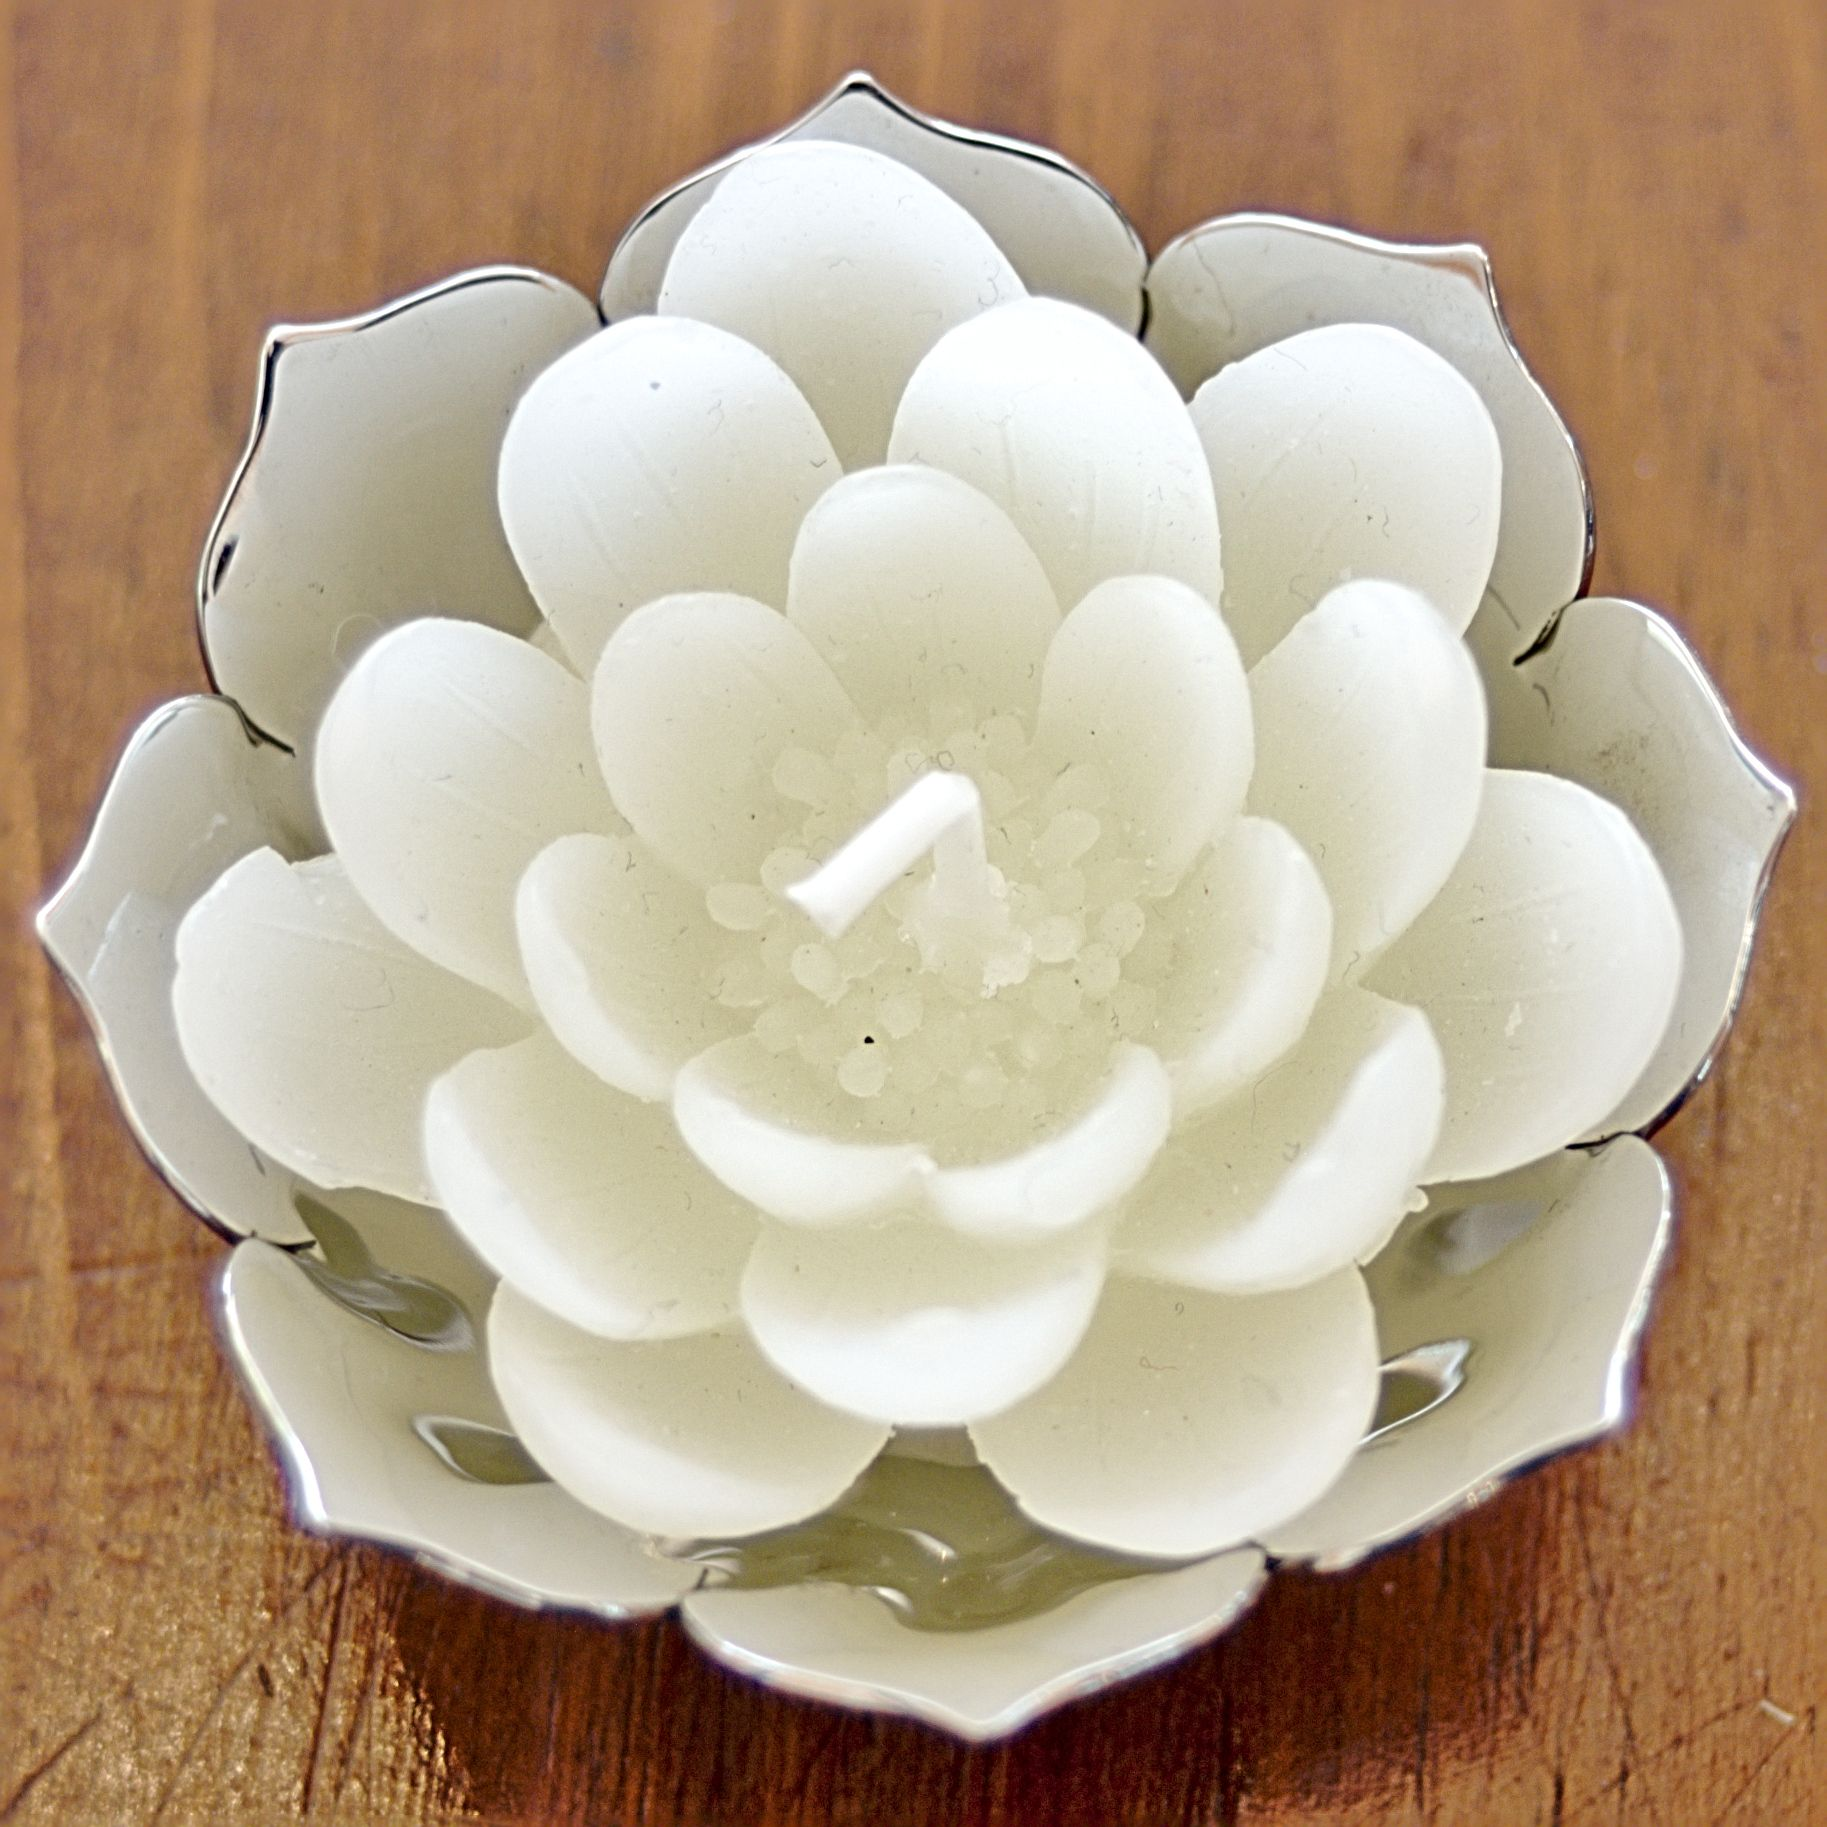 White lotus candles in lotus offering bowl lovely buddhist delicate white lotus flower candles are unscented and made paraffin wax with cotton wick burn time is 2 hours set of 4 candles dhlflorist Image collections